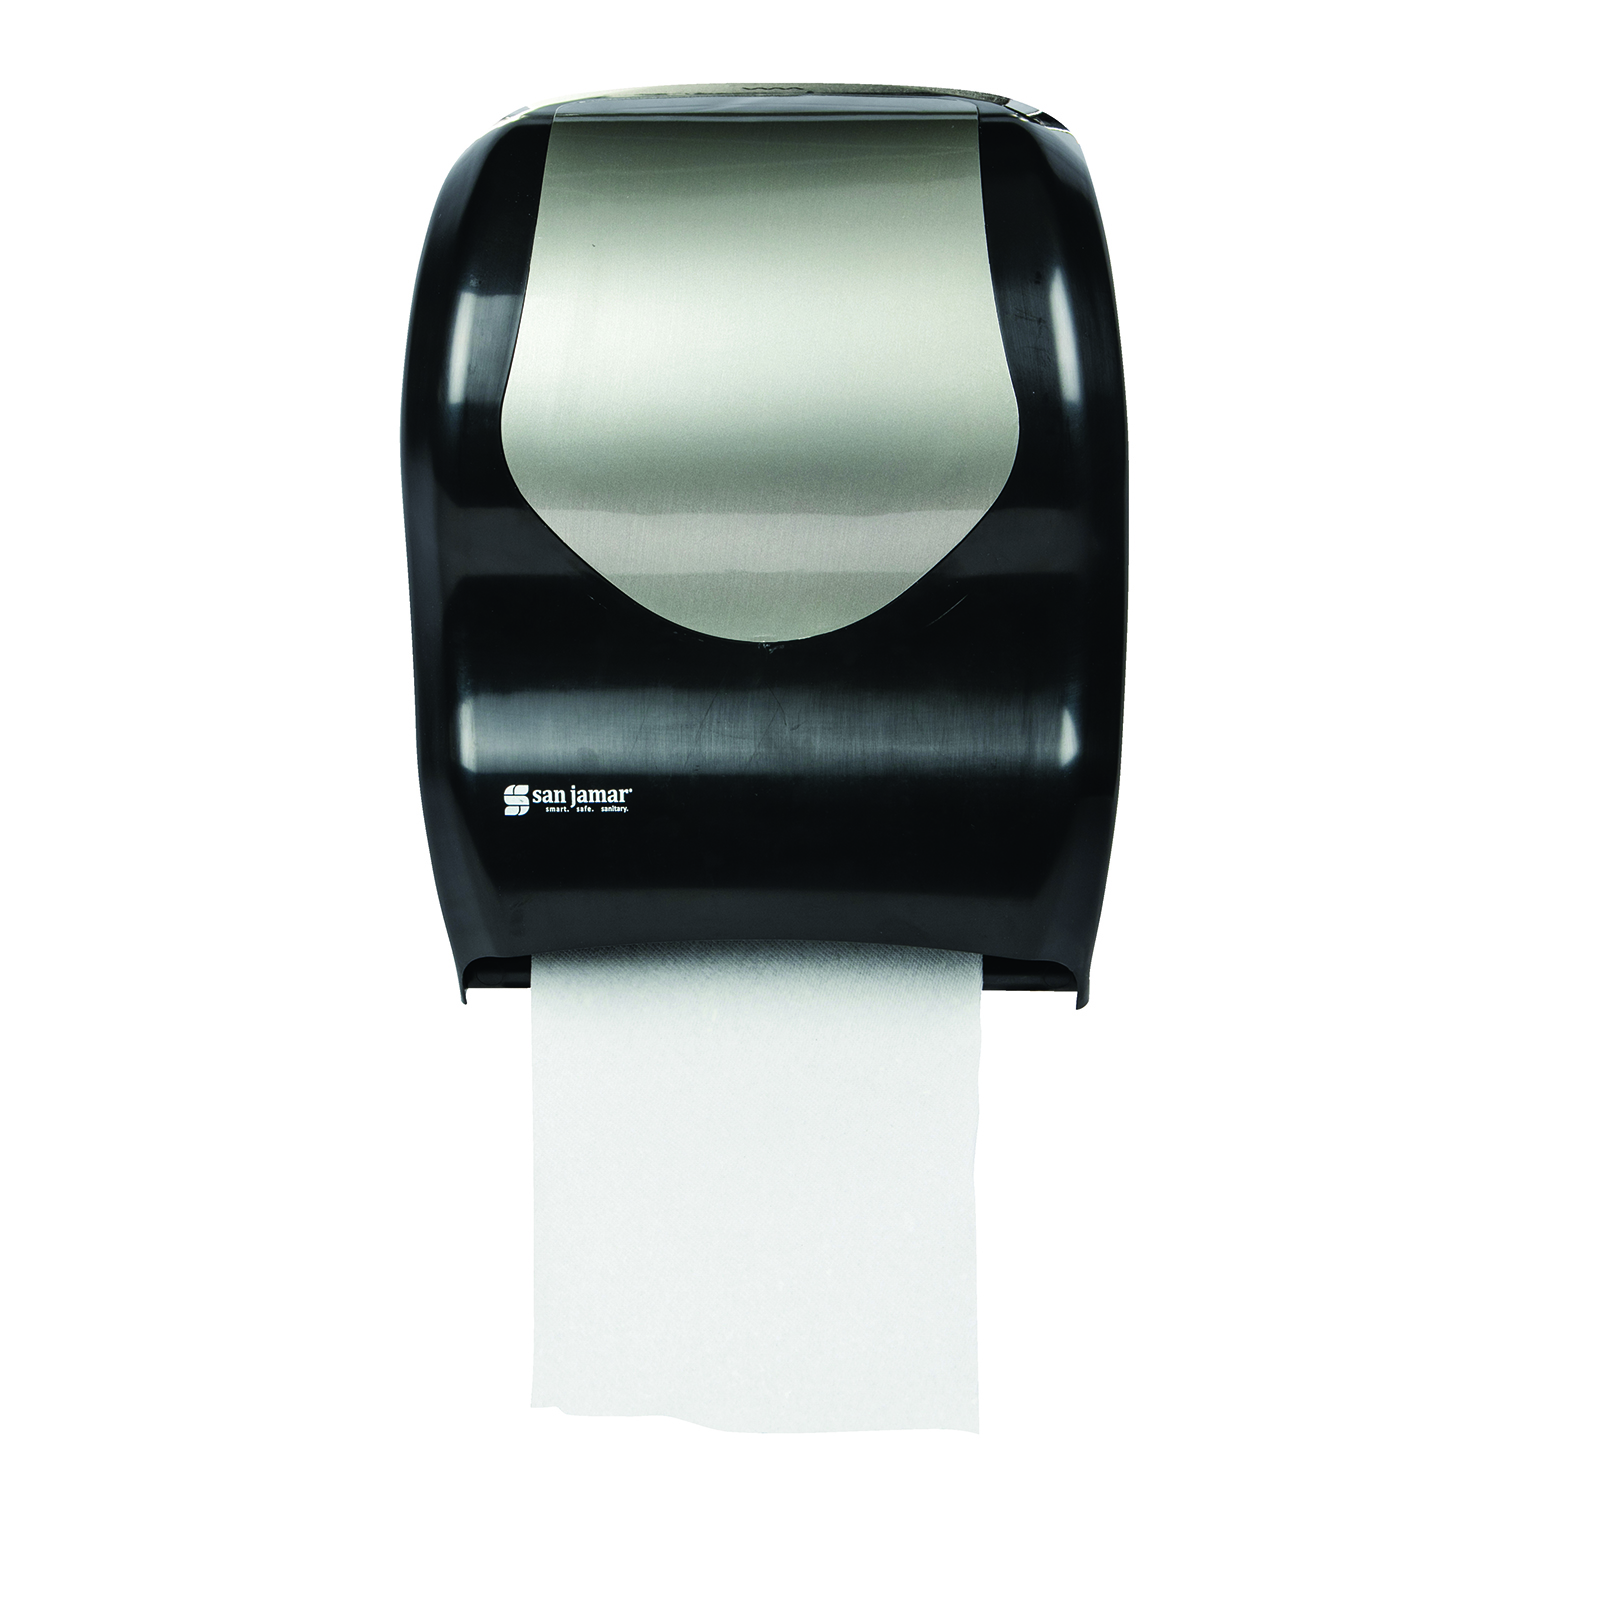 San Jamar T1370BKSS paper towel dispenser